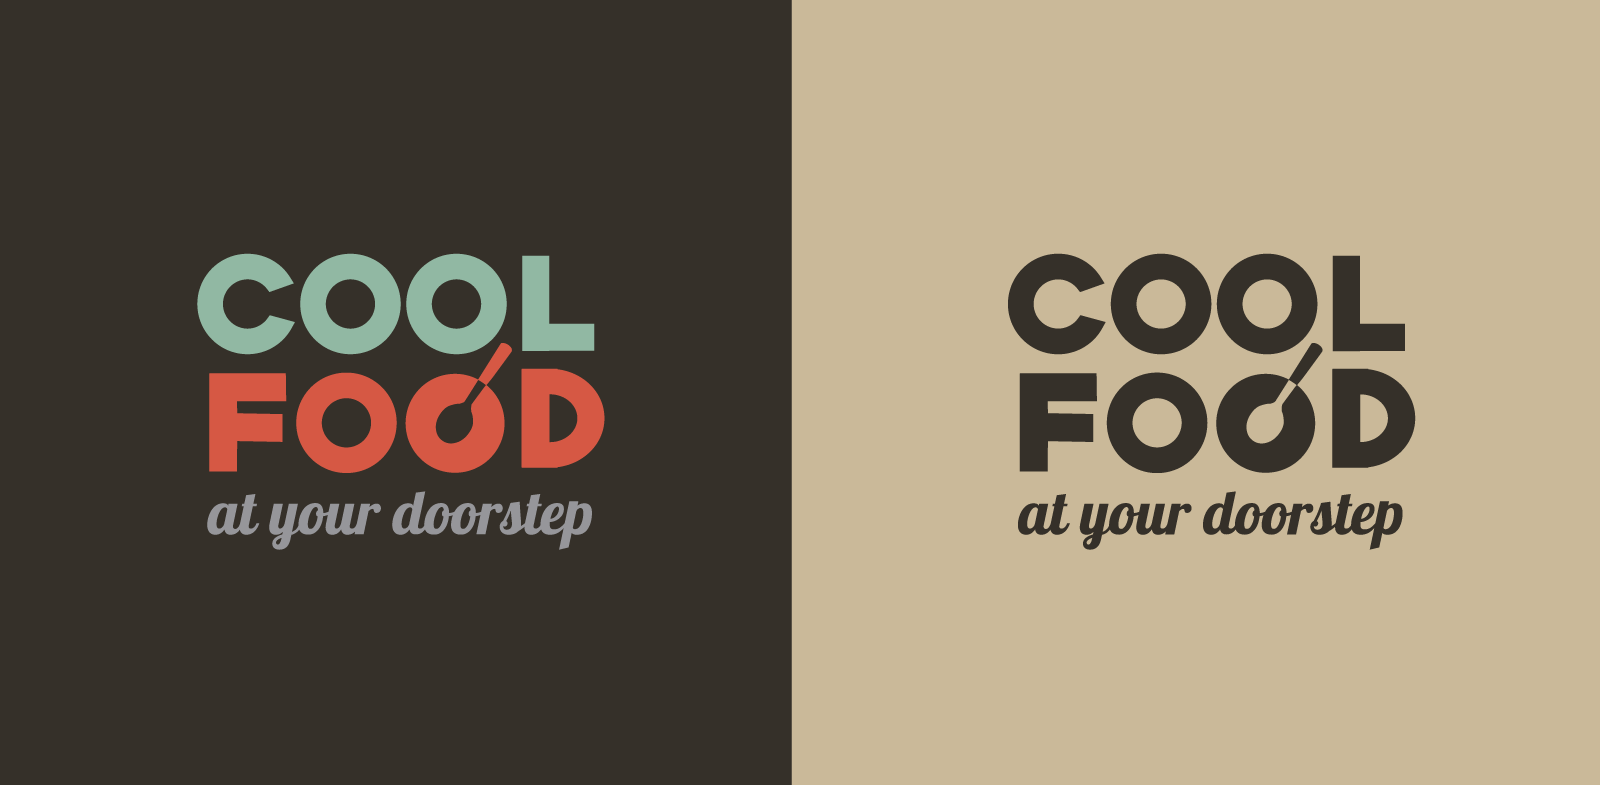 coolfood_02.png